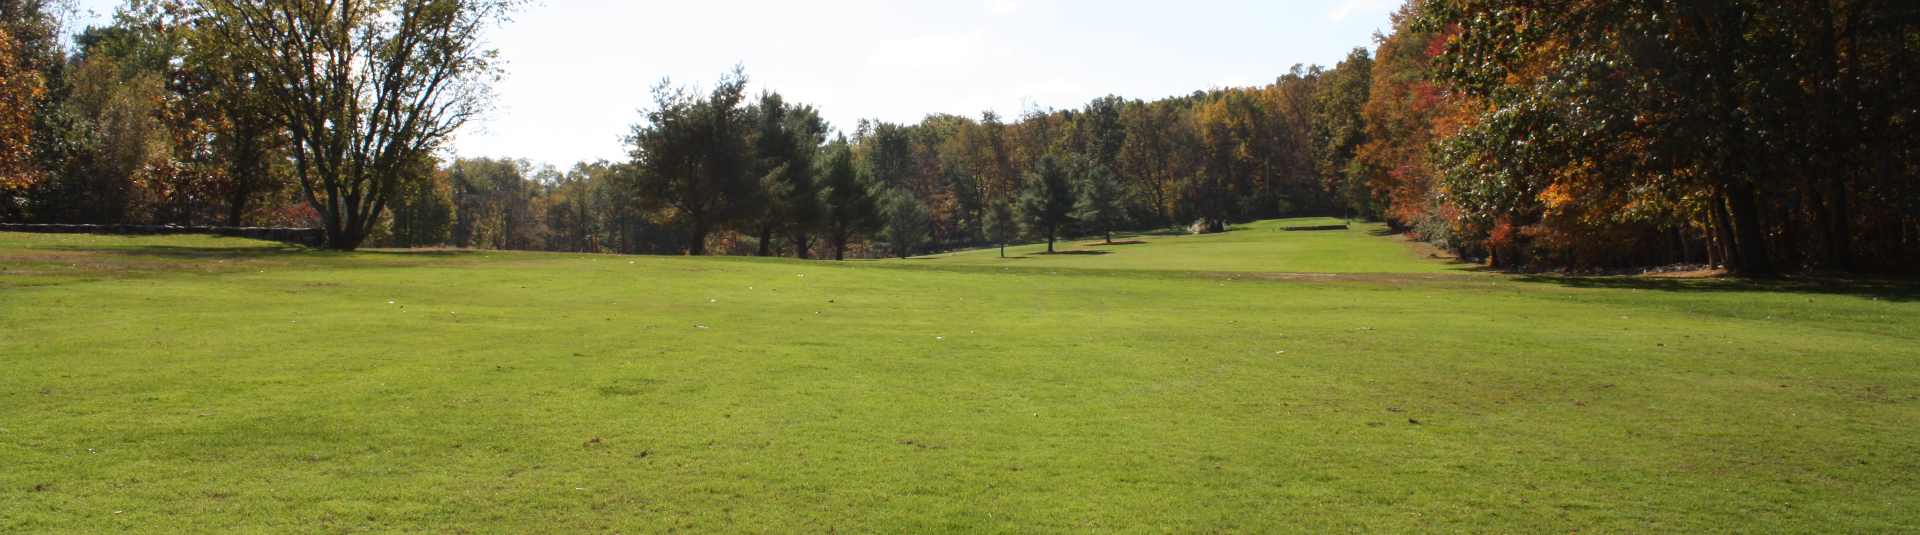 Lush greens at Pehquenakonck Country Club in North Salem